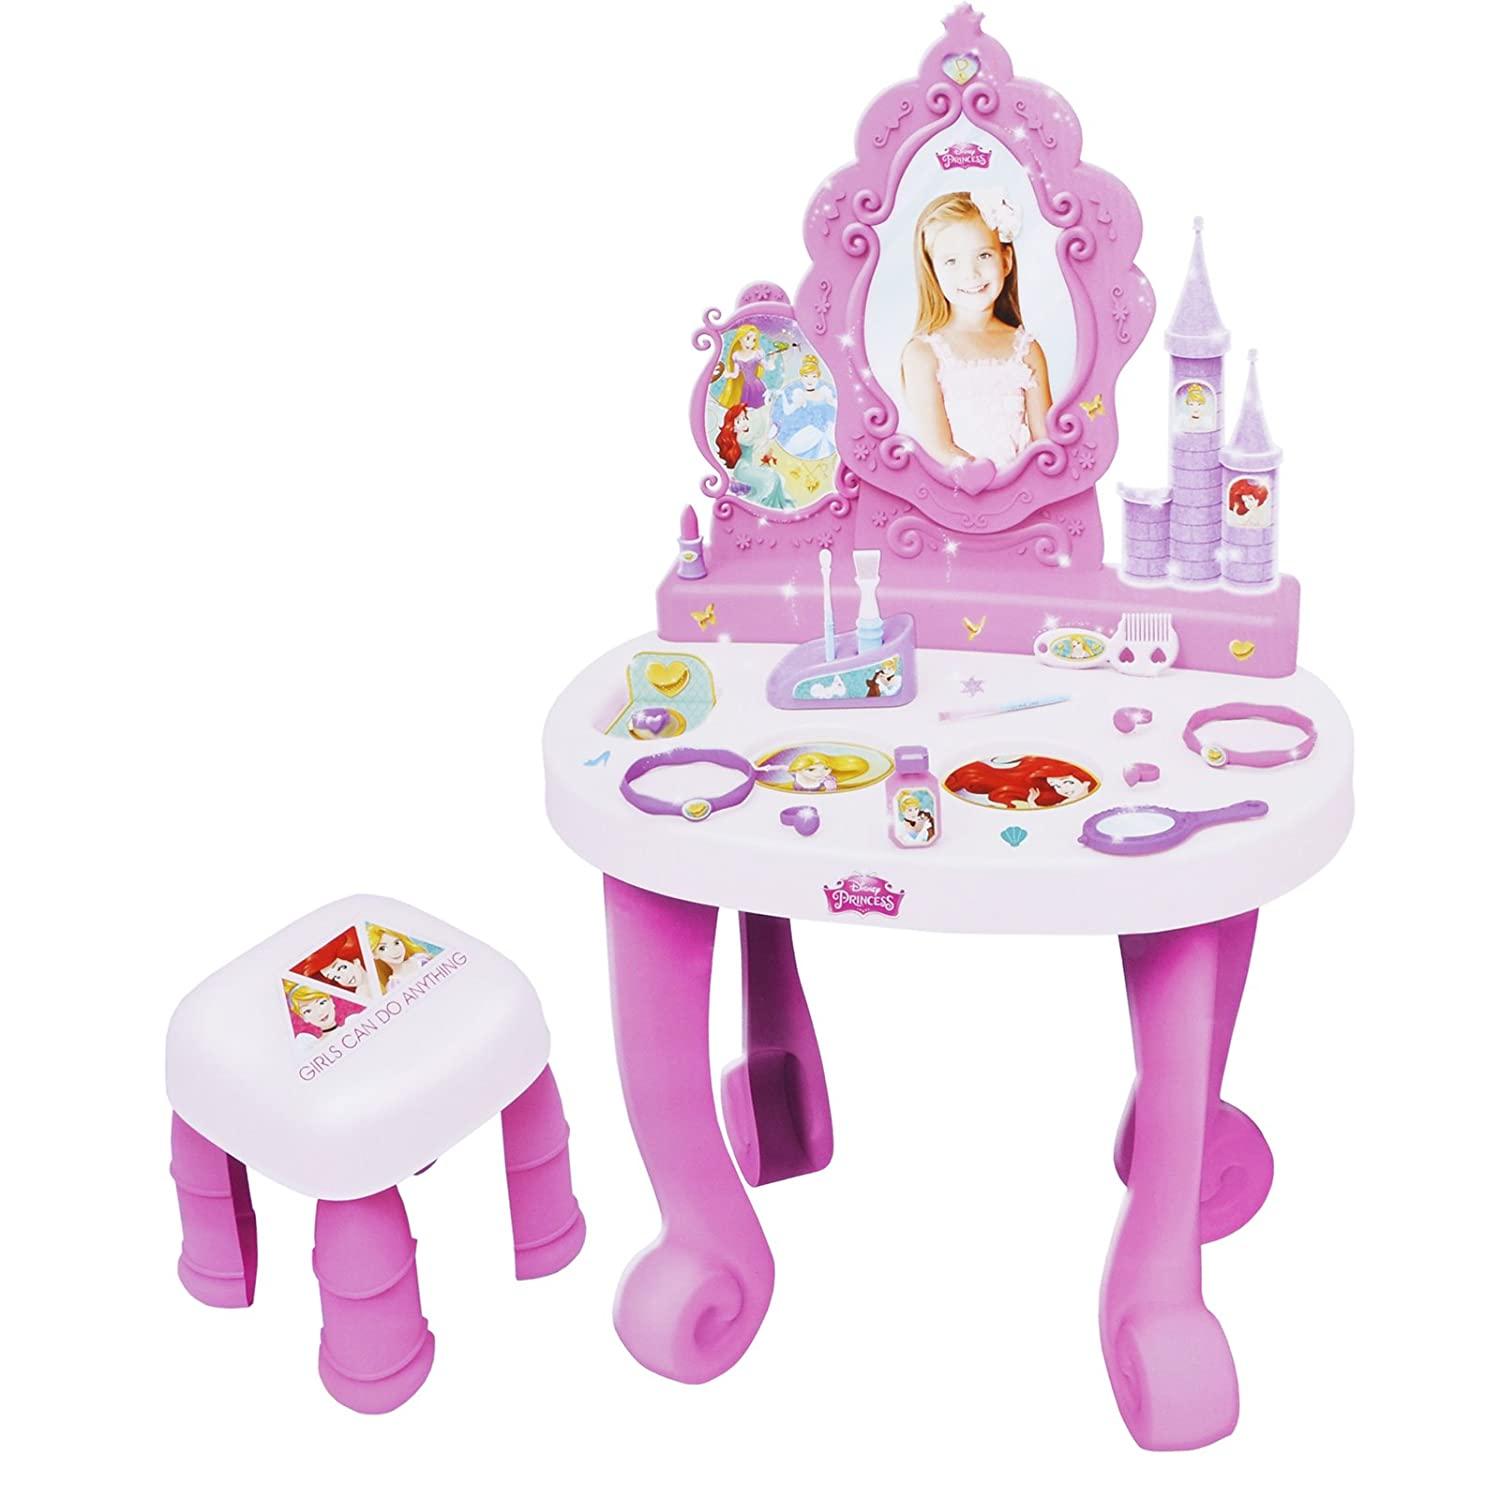 Disney Princess Dressing Table Play Set Girls Vanity Mirror Toy 17